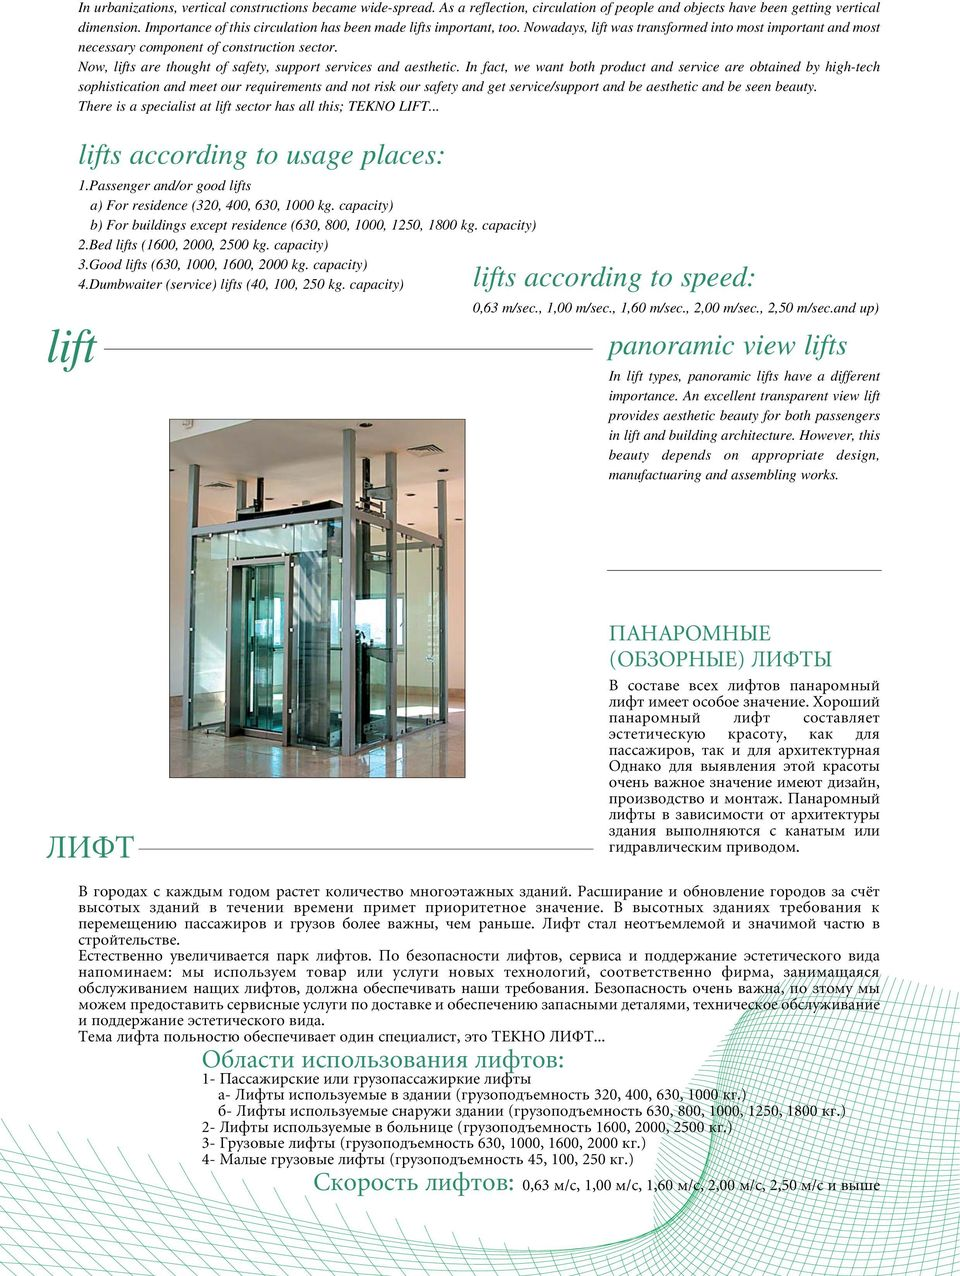 Now, lifts are thought of safety, support services and aesthetic.